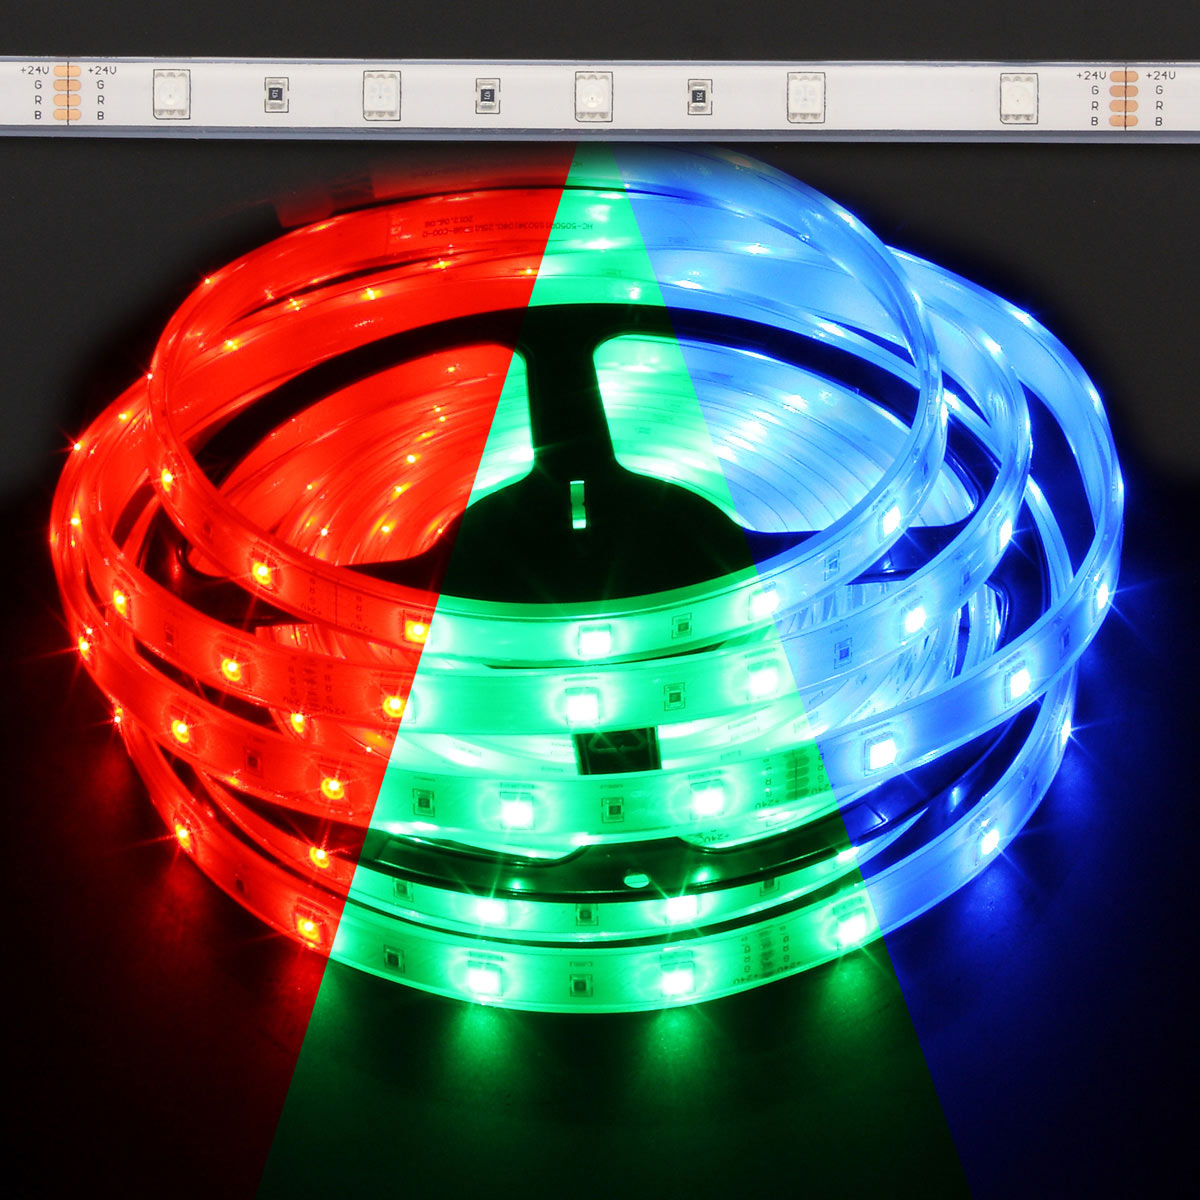 Color Changing Led Light Strips: 12V Waterproof Color Changing RGB LED Strip